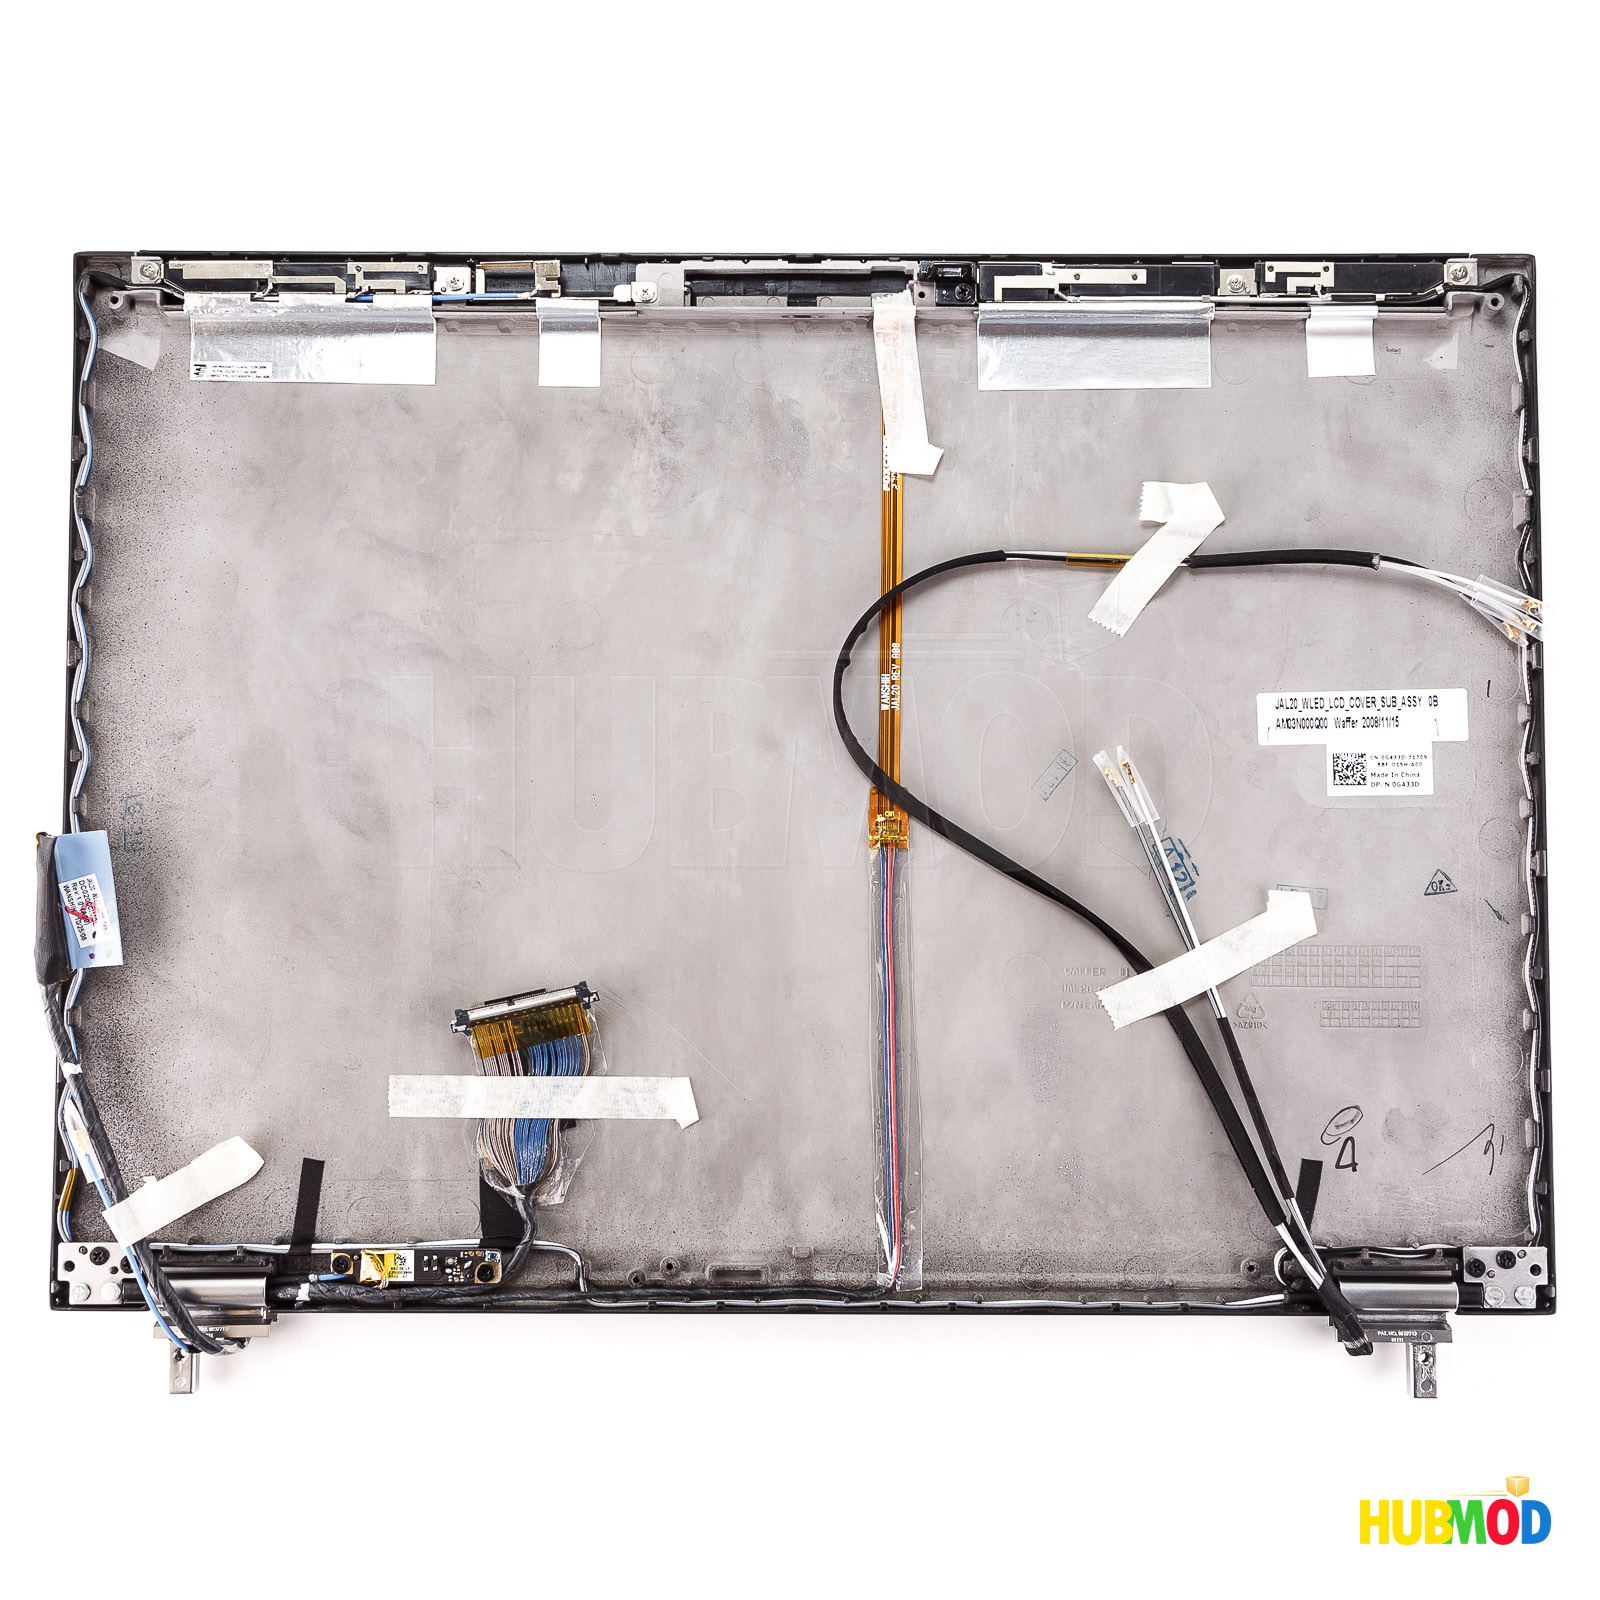 10 Lot New Genuine OEM DELL Latitude E6500 Laptop LCD Rear Cover Lid CCFL W890N